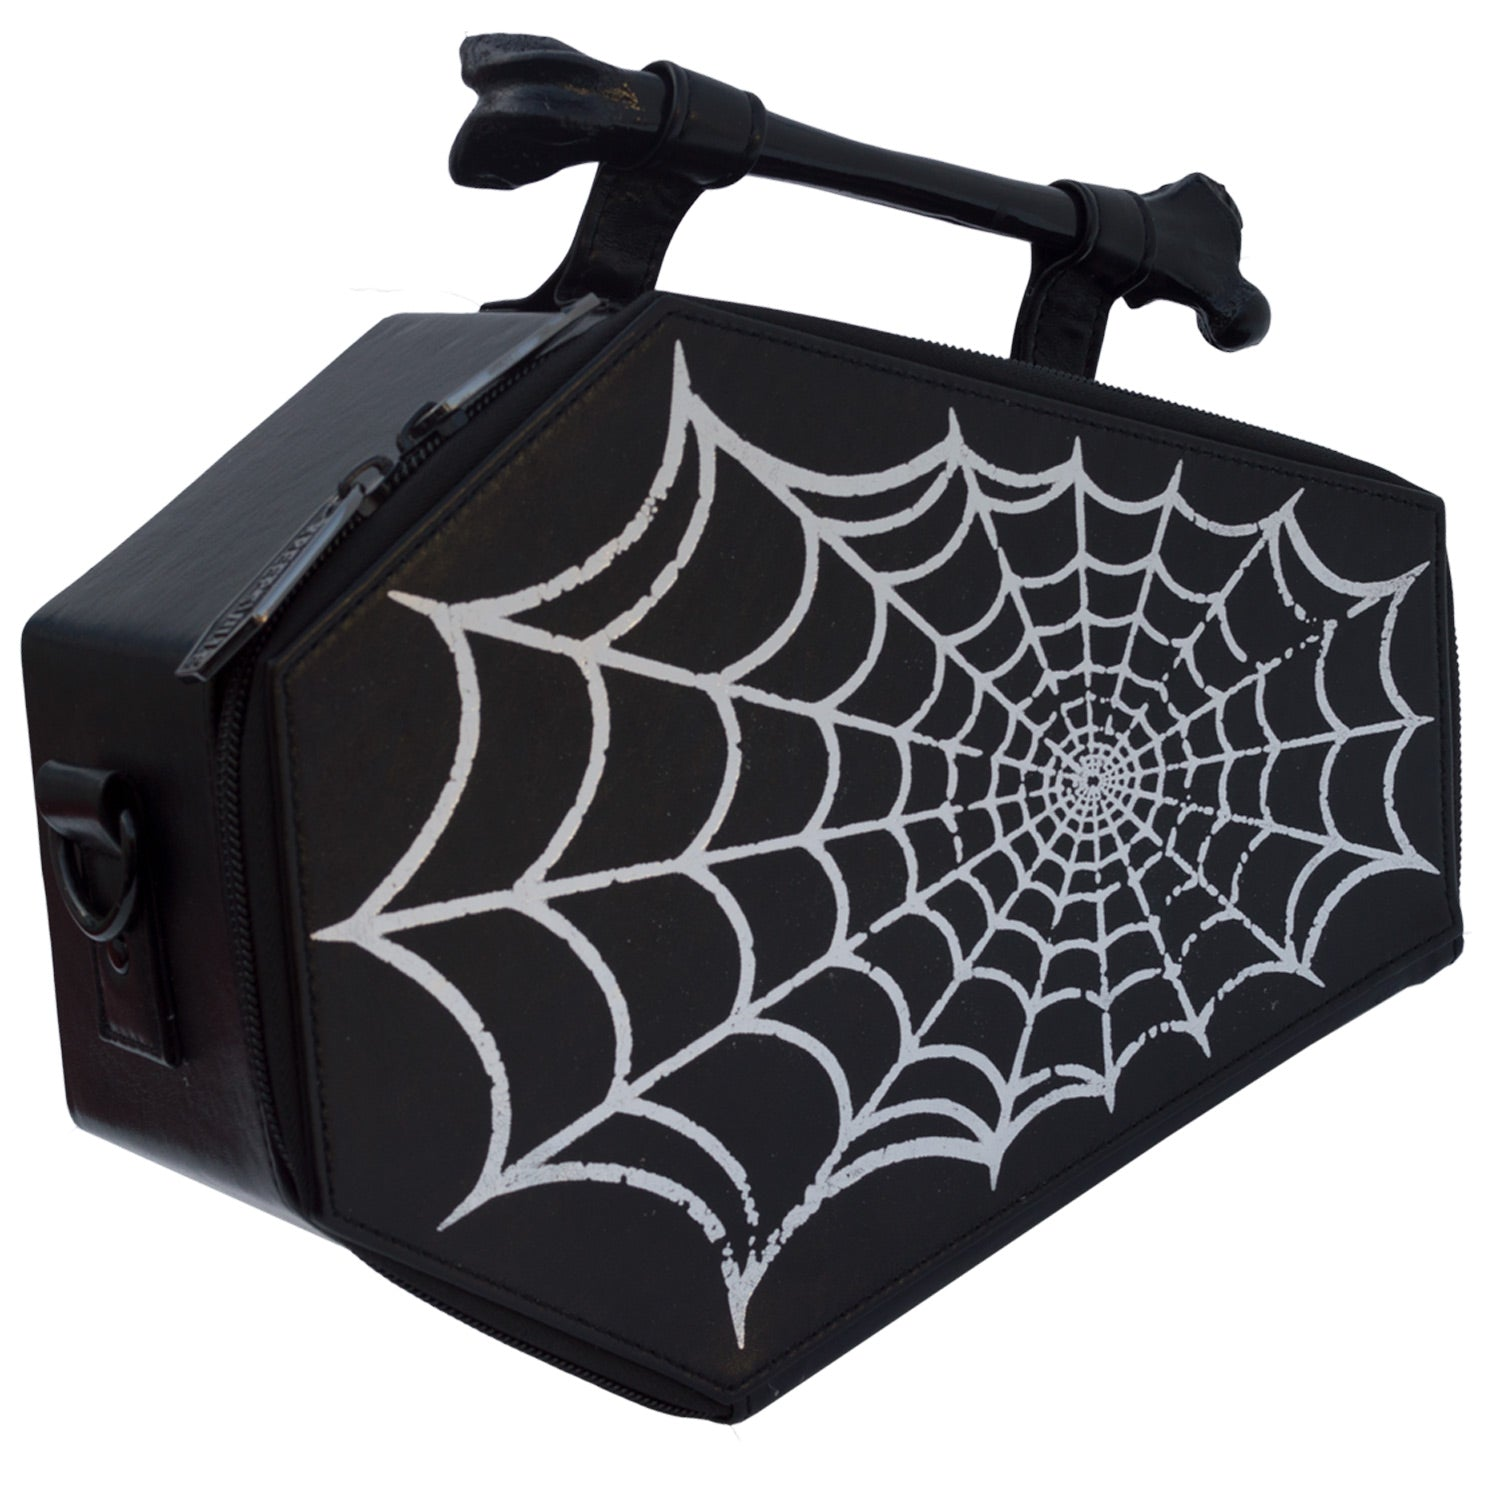 Spiderweb Foil Coffin Purse Bag